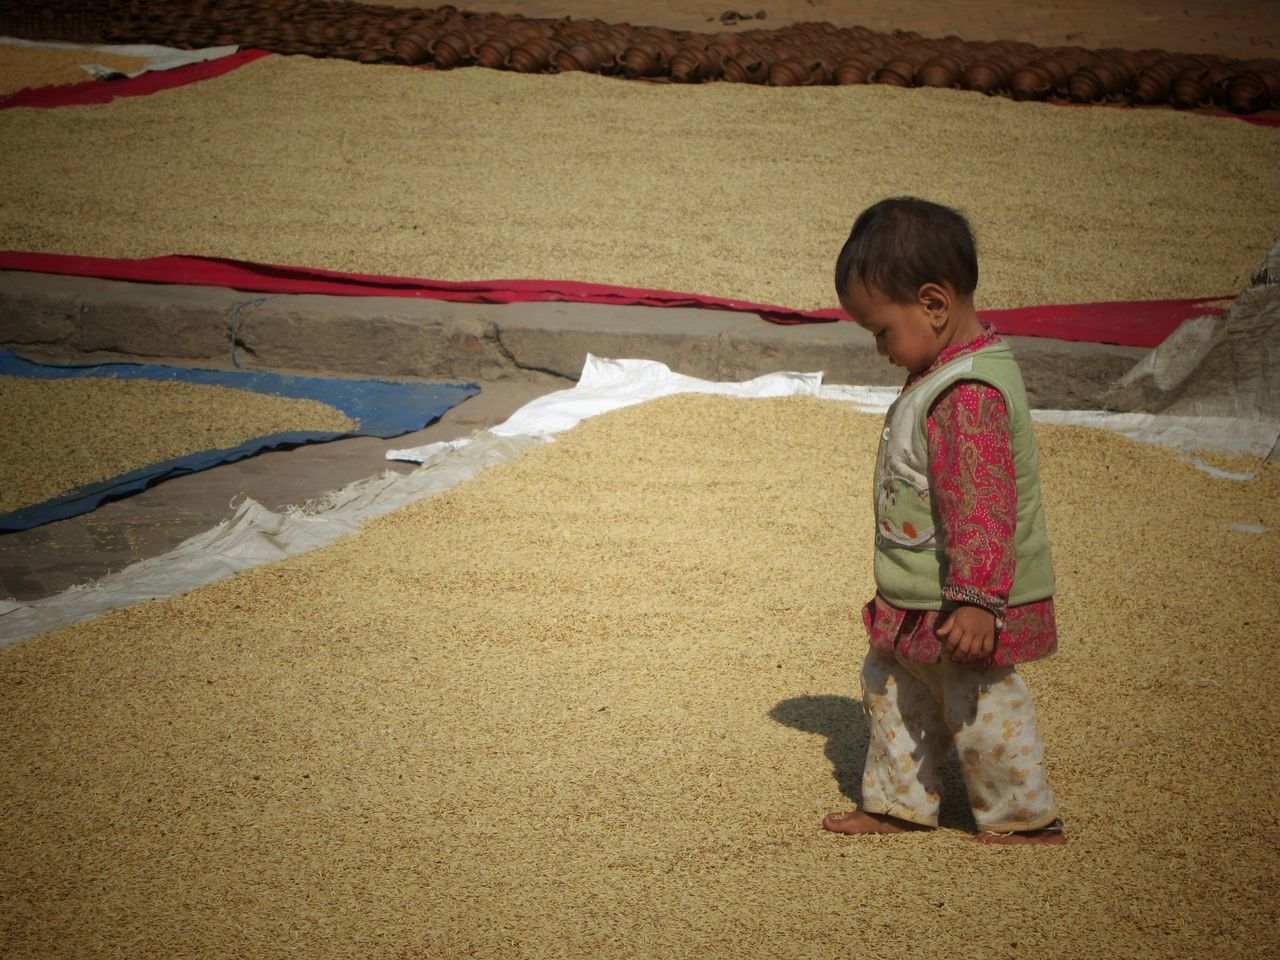 Child walking on Rice Grains in Bhaktapur Nepal Courtyard  Culture Heritage Toddler  Child Newari Kathmandu Tradition UNESCO World Heritage Site Rural Scenes Travel Up Close Street Photography Agriculture Telling Stories Differently People And Places Miles Away